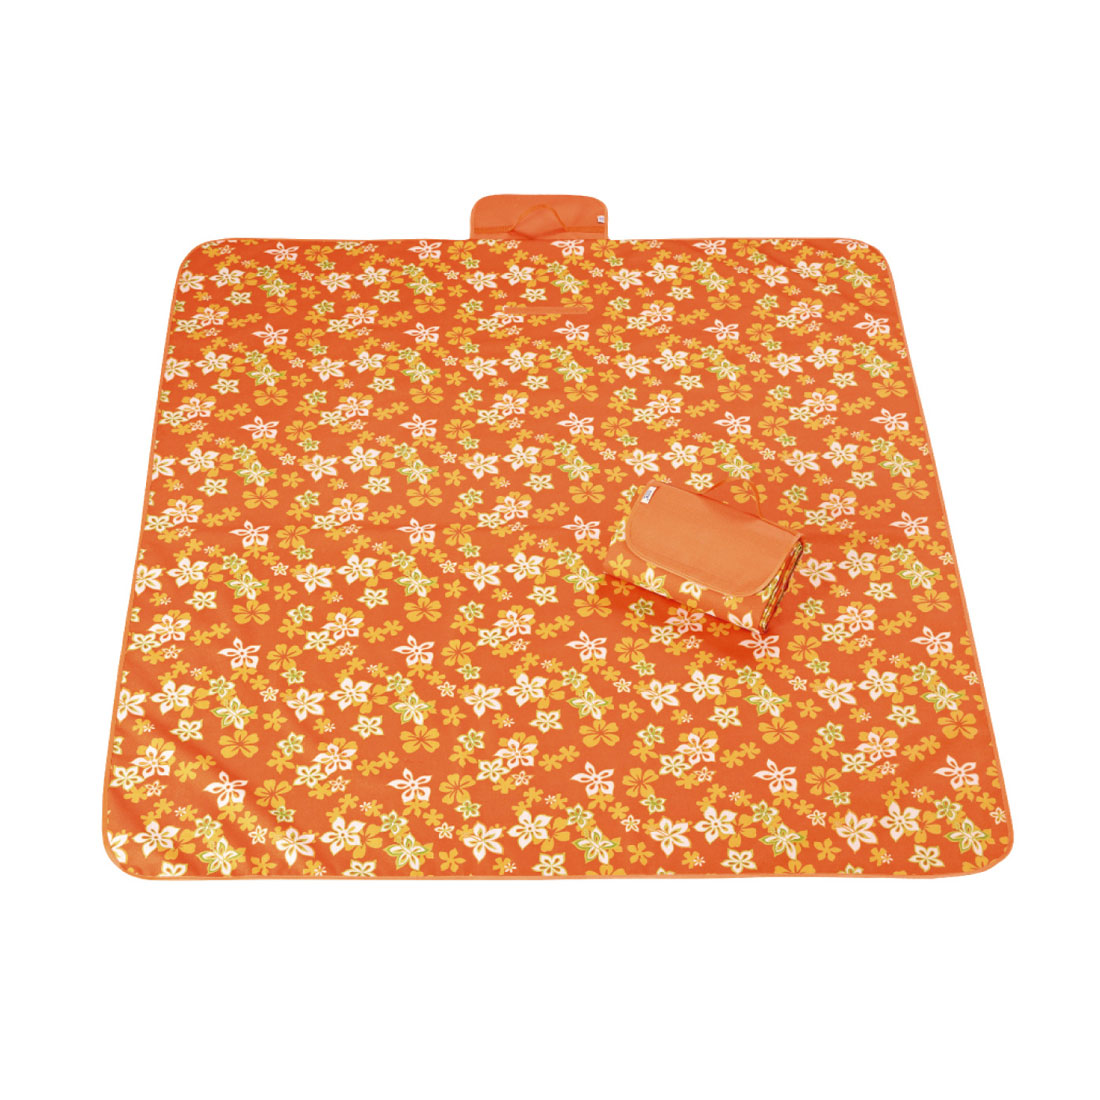 Outdoor Camping Nylon Iris Japonica Pattern Picnic Mat Pad Orange 145 x 180cm